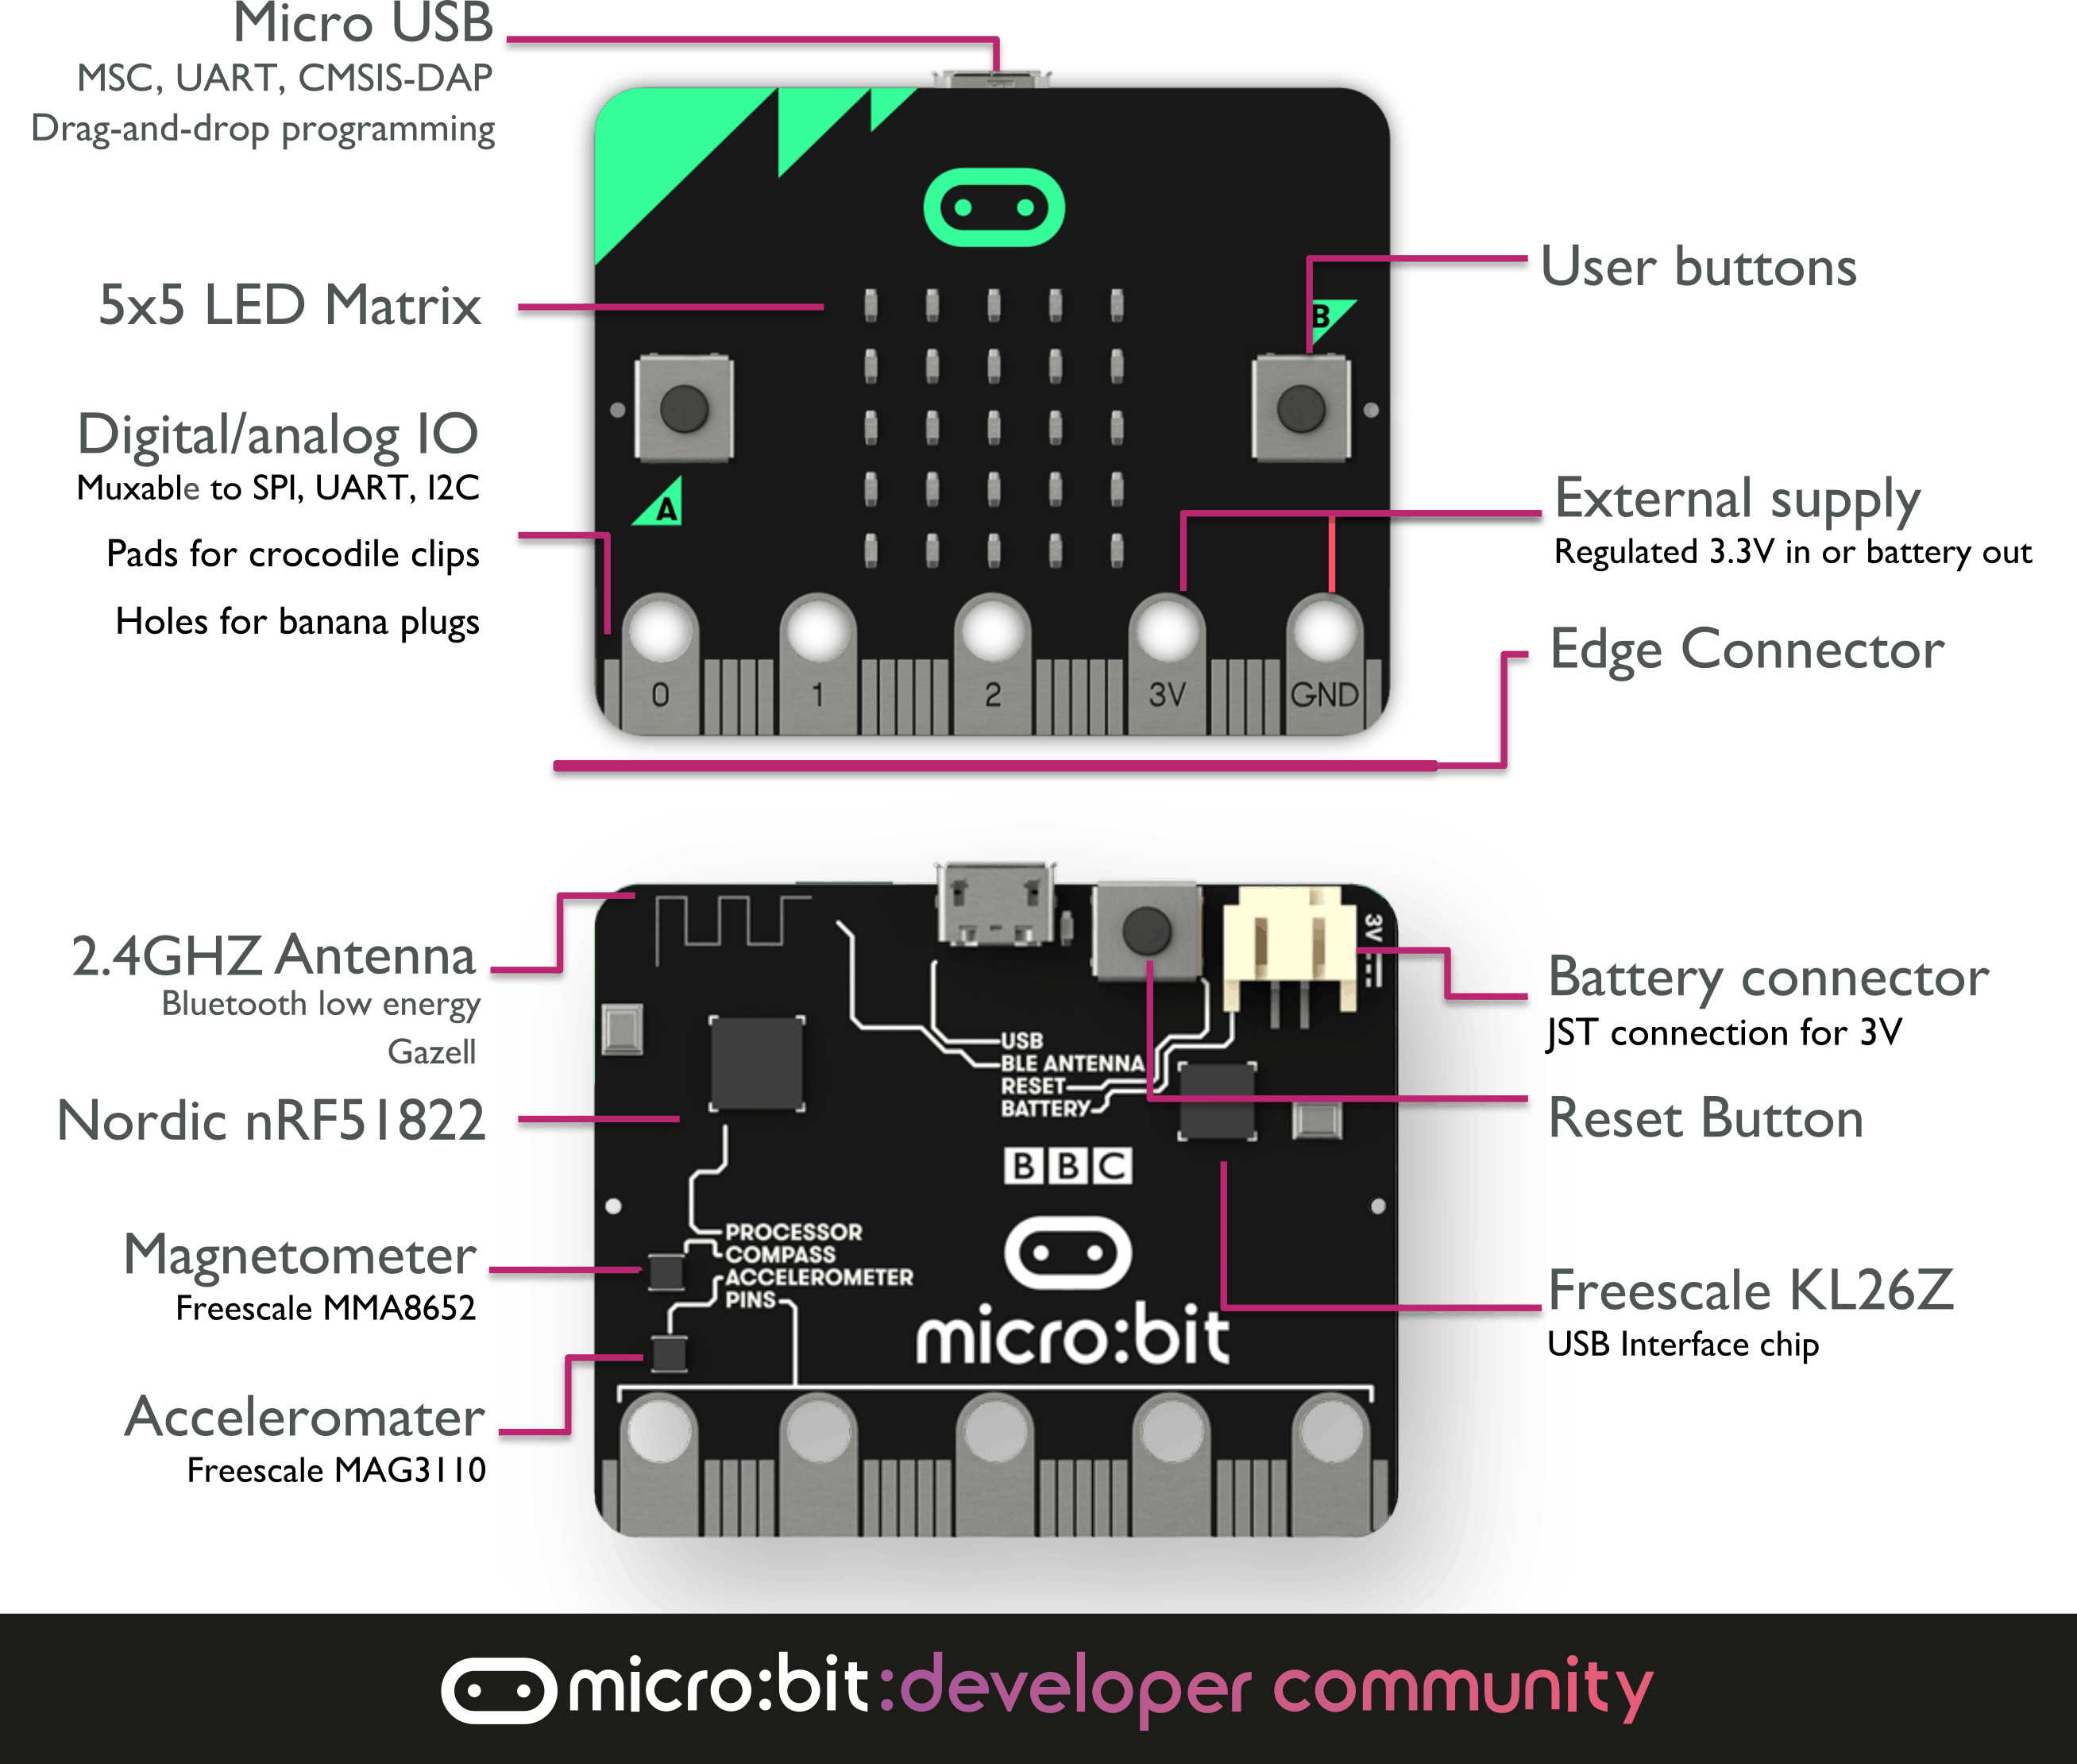 Picture Source: MIcro:bit developer community